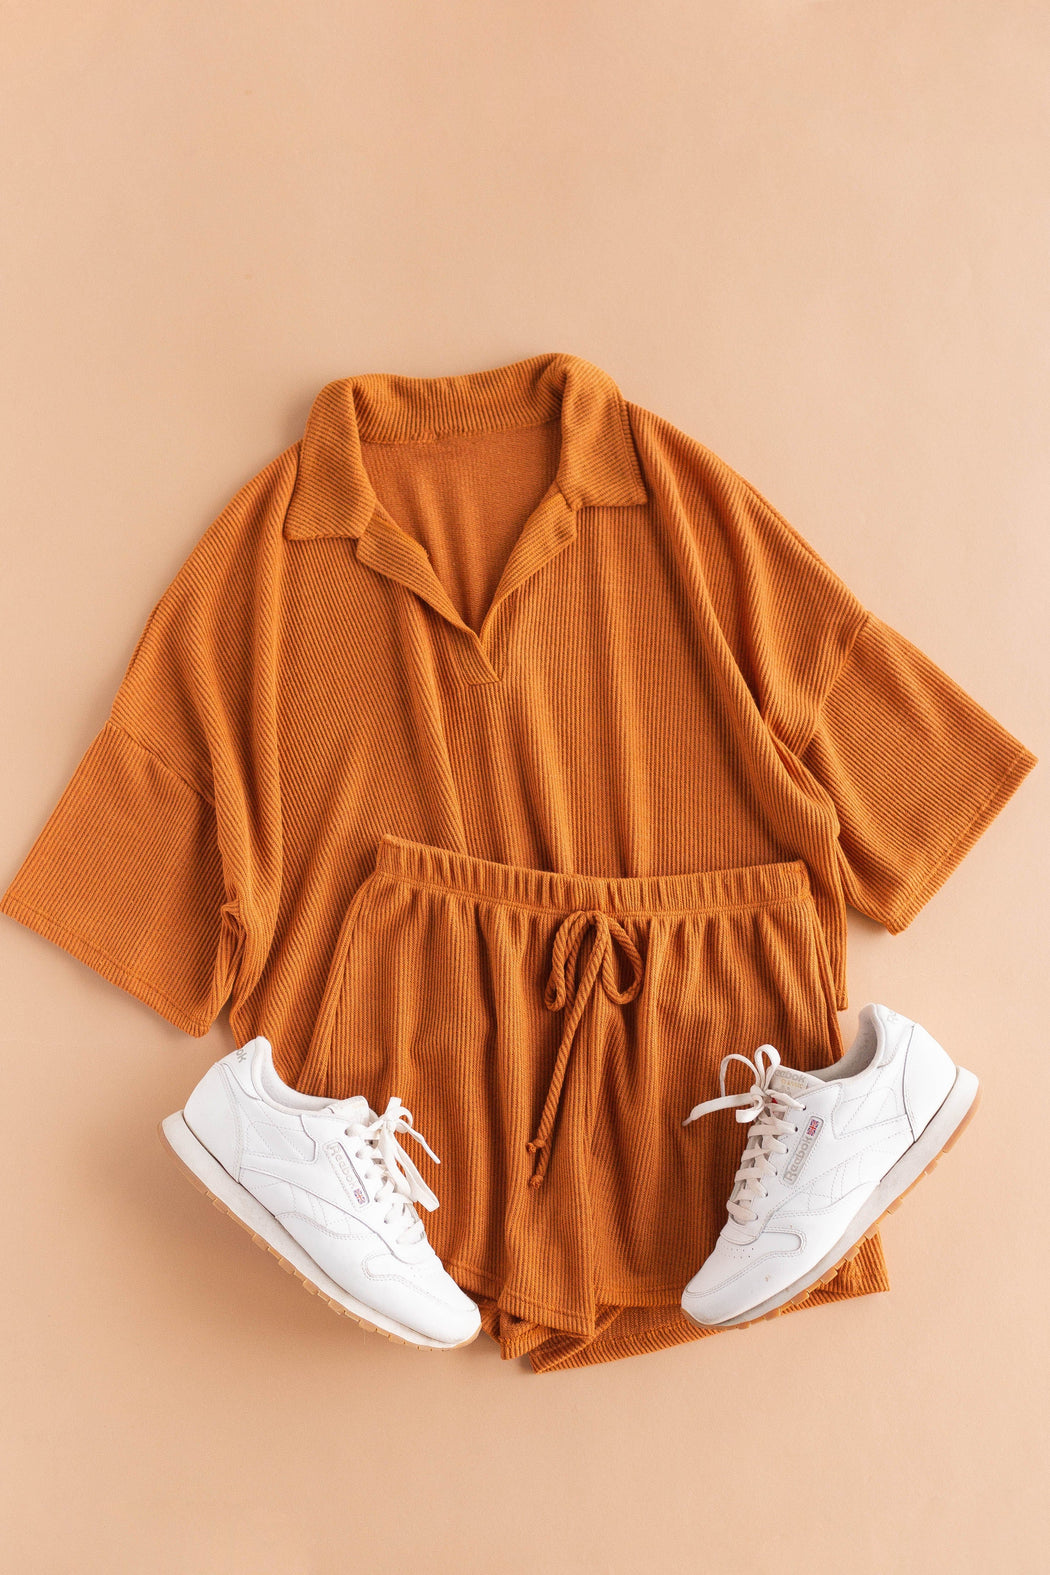 Autumn Top + Shorts Set